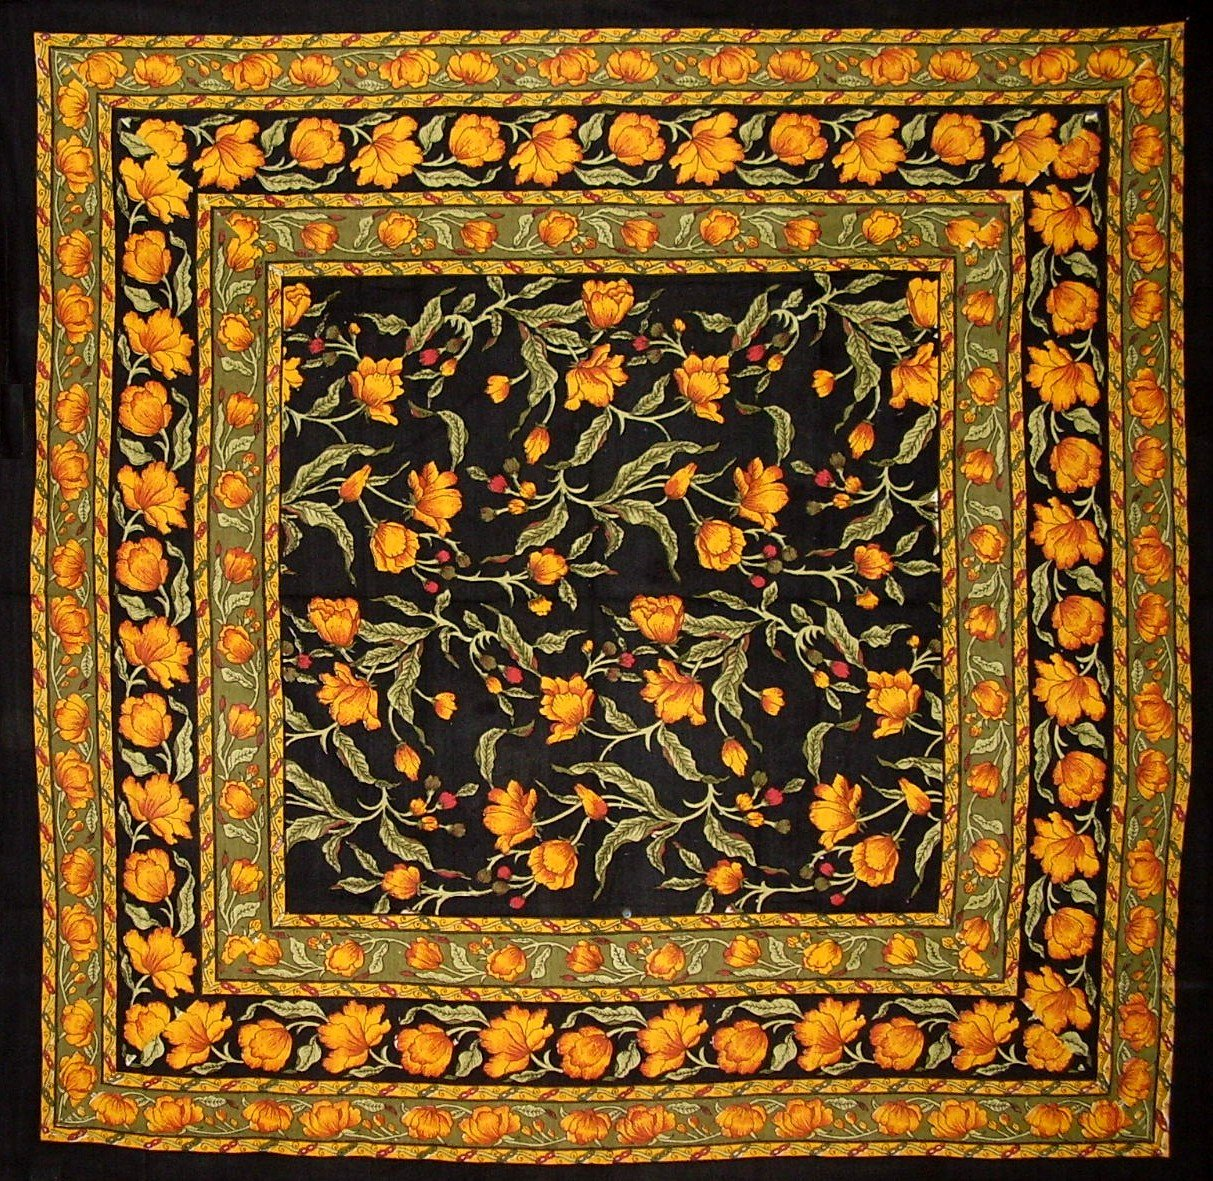 India Arts French Floral Square Cotton Tablecloth 60'' x 60'' Amber on Black by India Arts (Image #1)